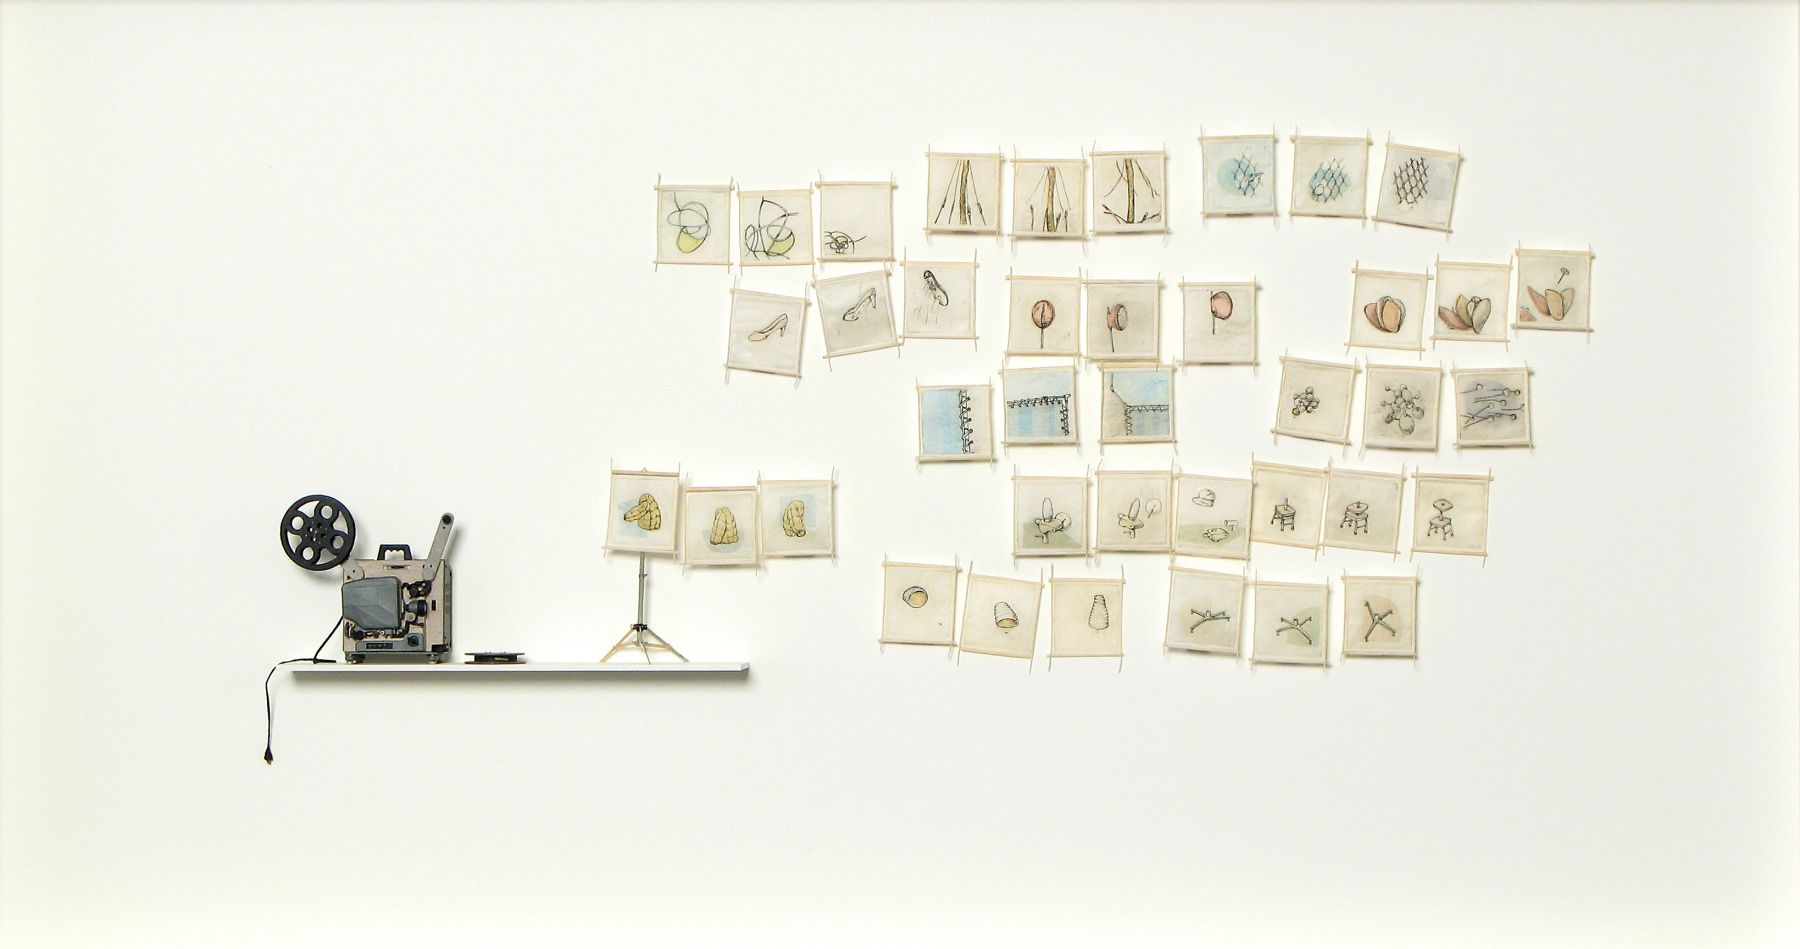 Cybèle Young, I Didn't See that Part, 2008, Japanese paper construction with copperplate etching and chine colle, 23 1/2 x 42 1/2 x 3 inches